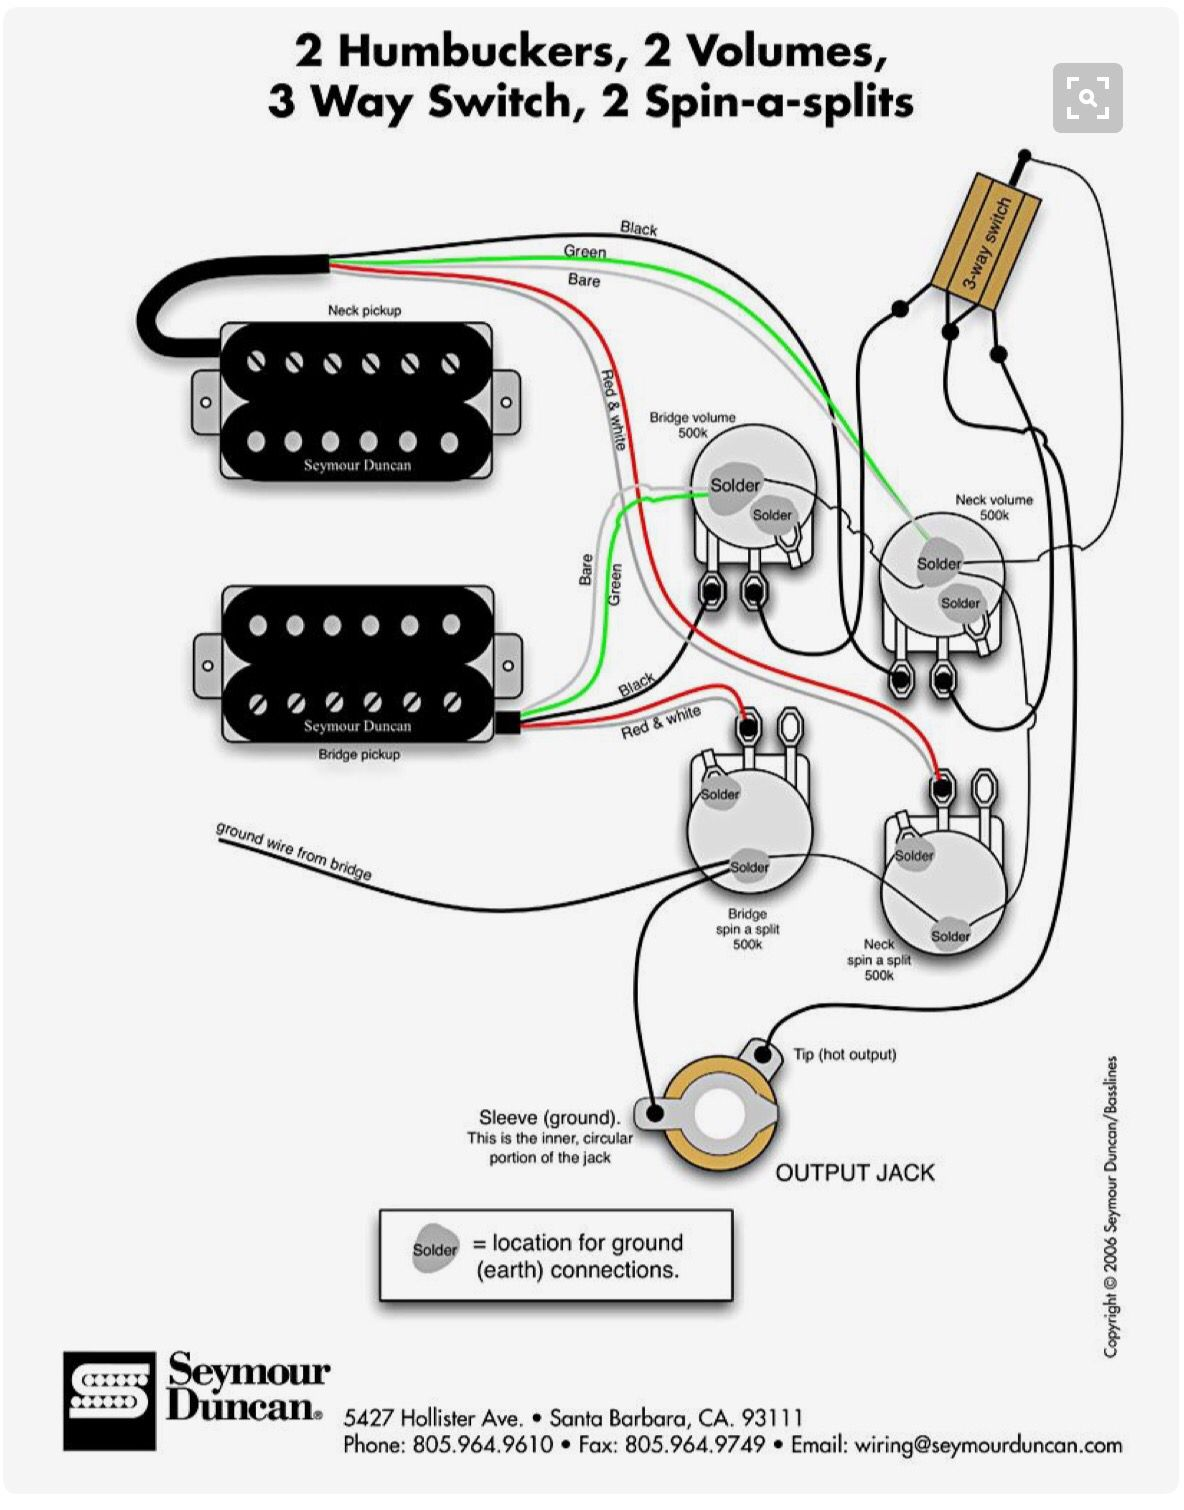 2 Humbuckers, 2 Volumes, 3-WY Switch, 2 Spin-A-Splits